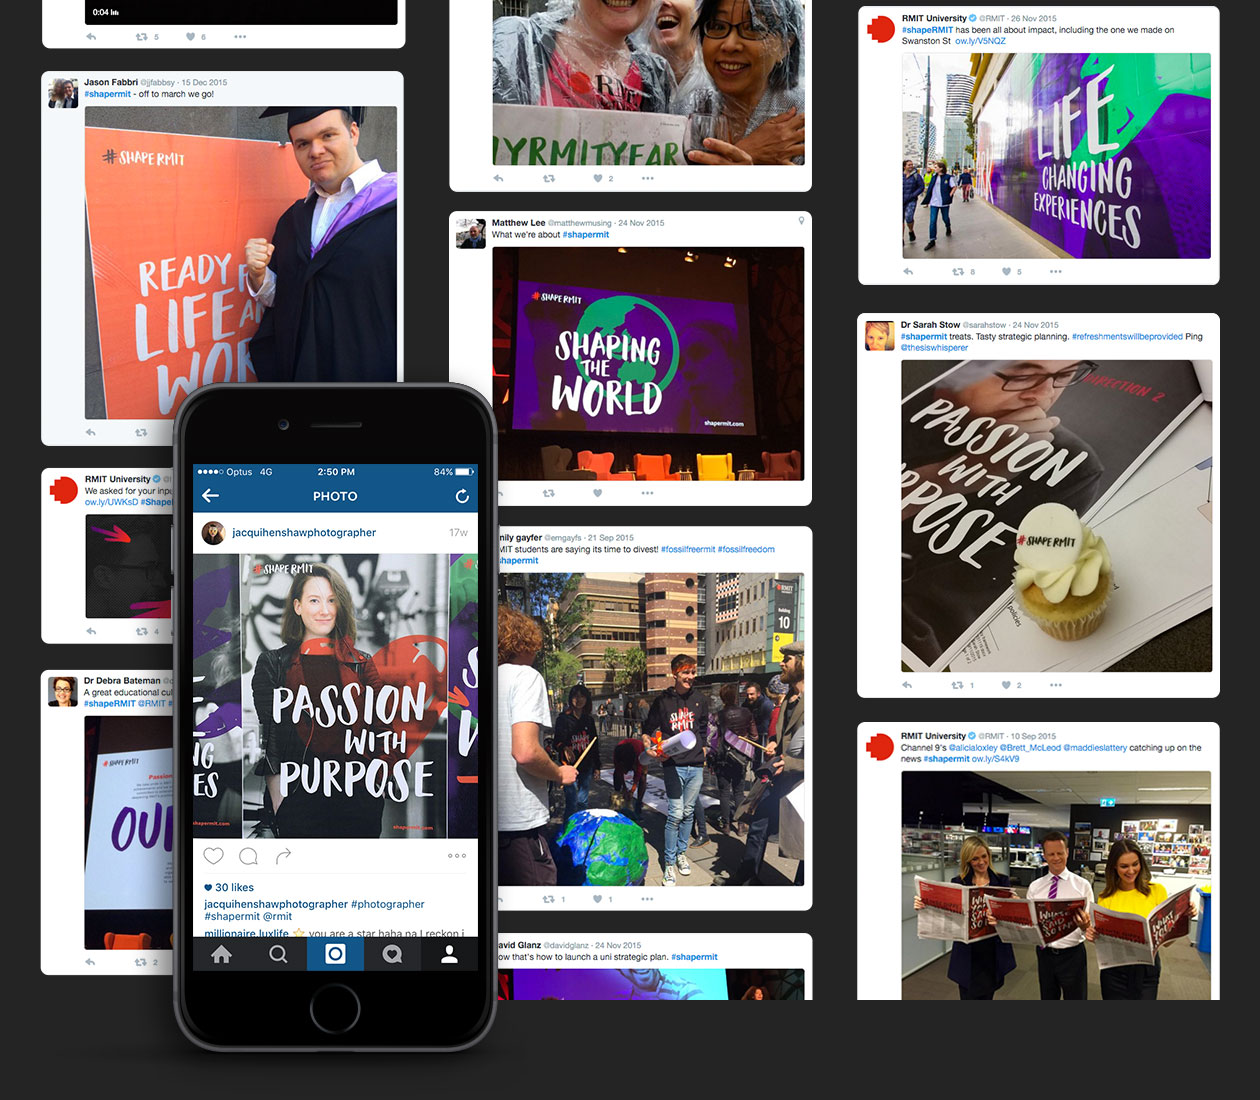 Crowd-sourced digital social media content featuring the ShapeRMIT hashtag